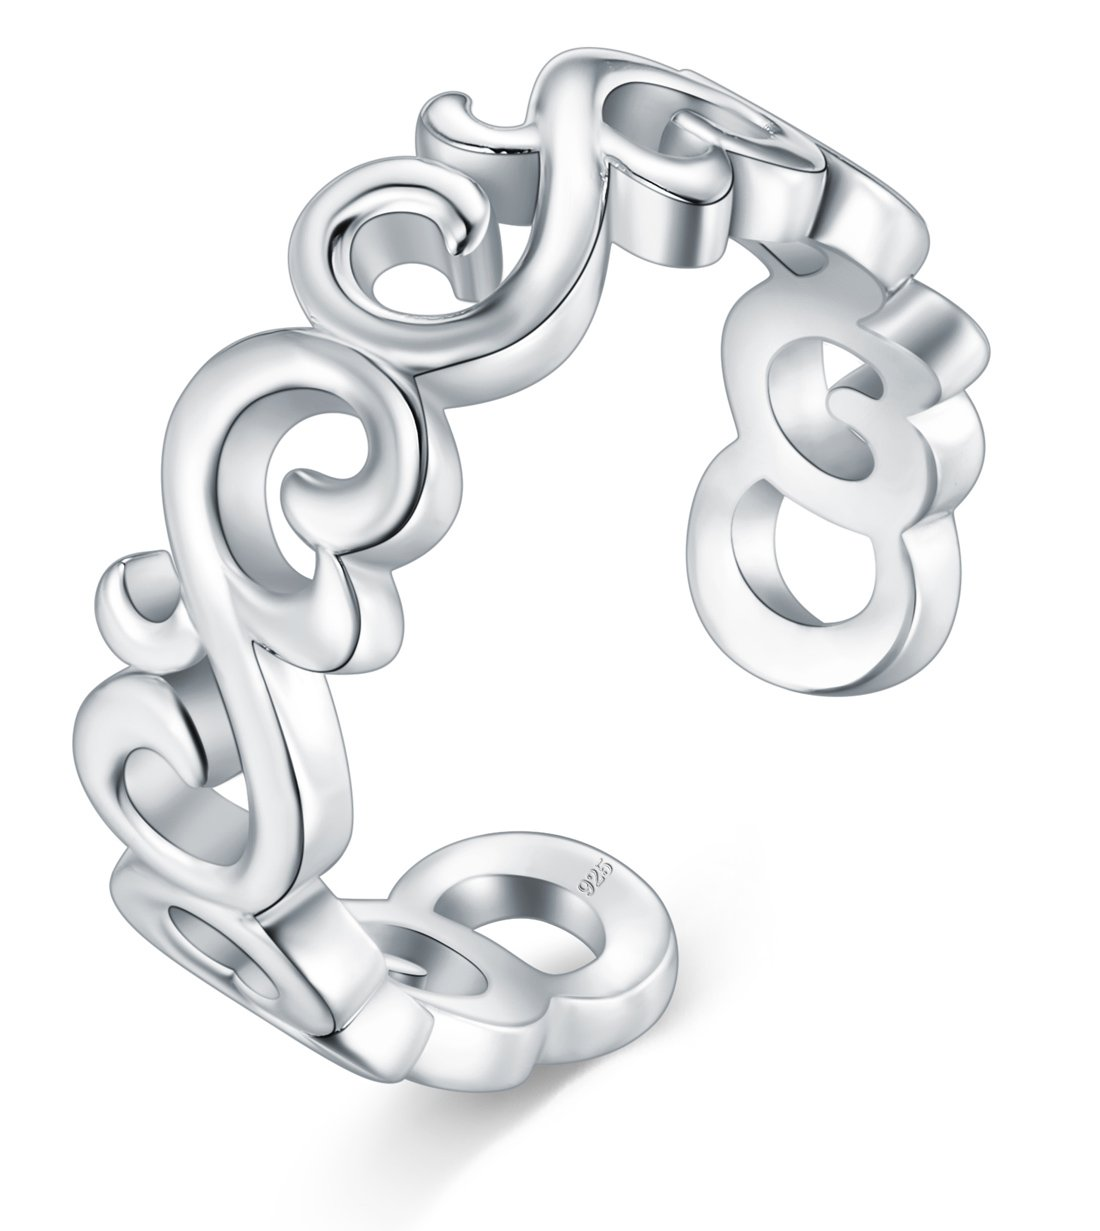 BORUO 925 Sterting Silver Toe Ring, Celtic Knot Adjustable Band Ring BRC Creative Corp.